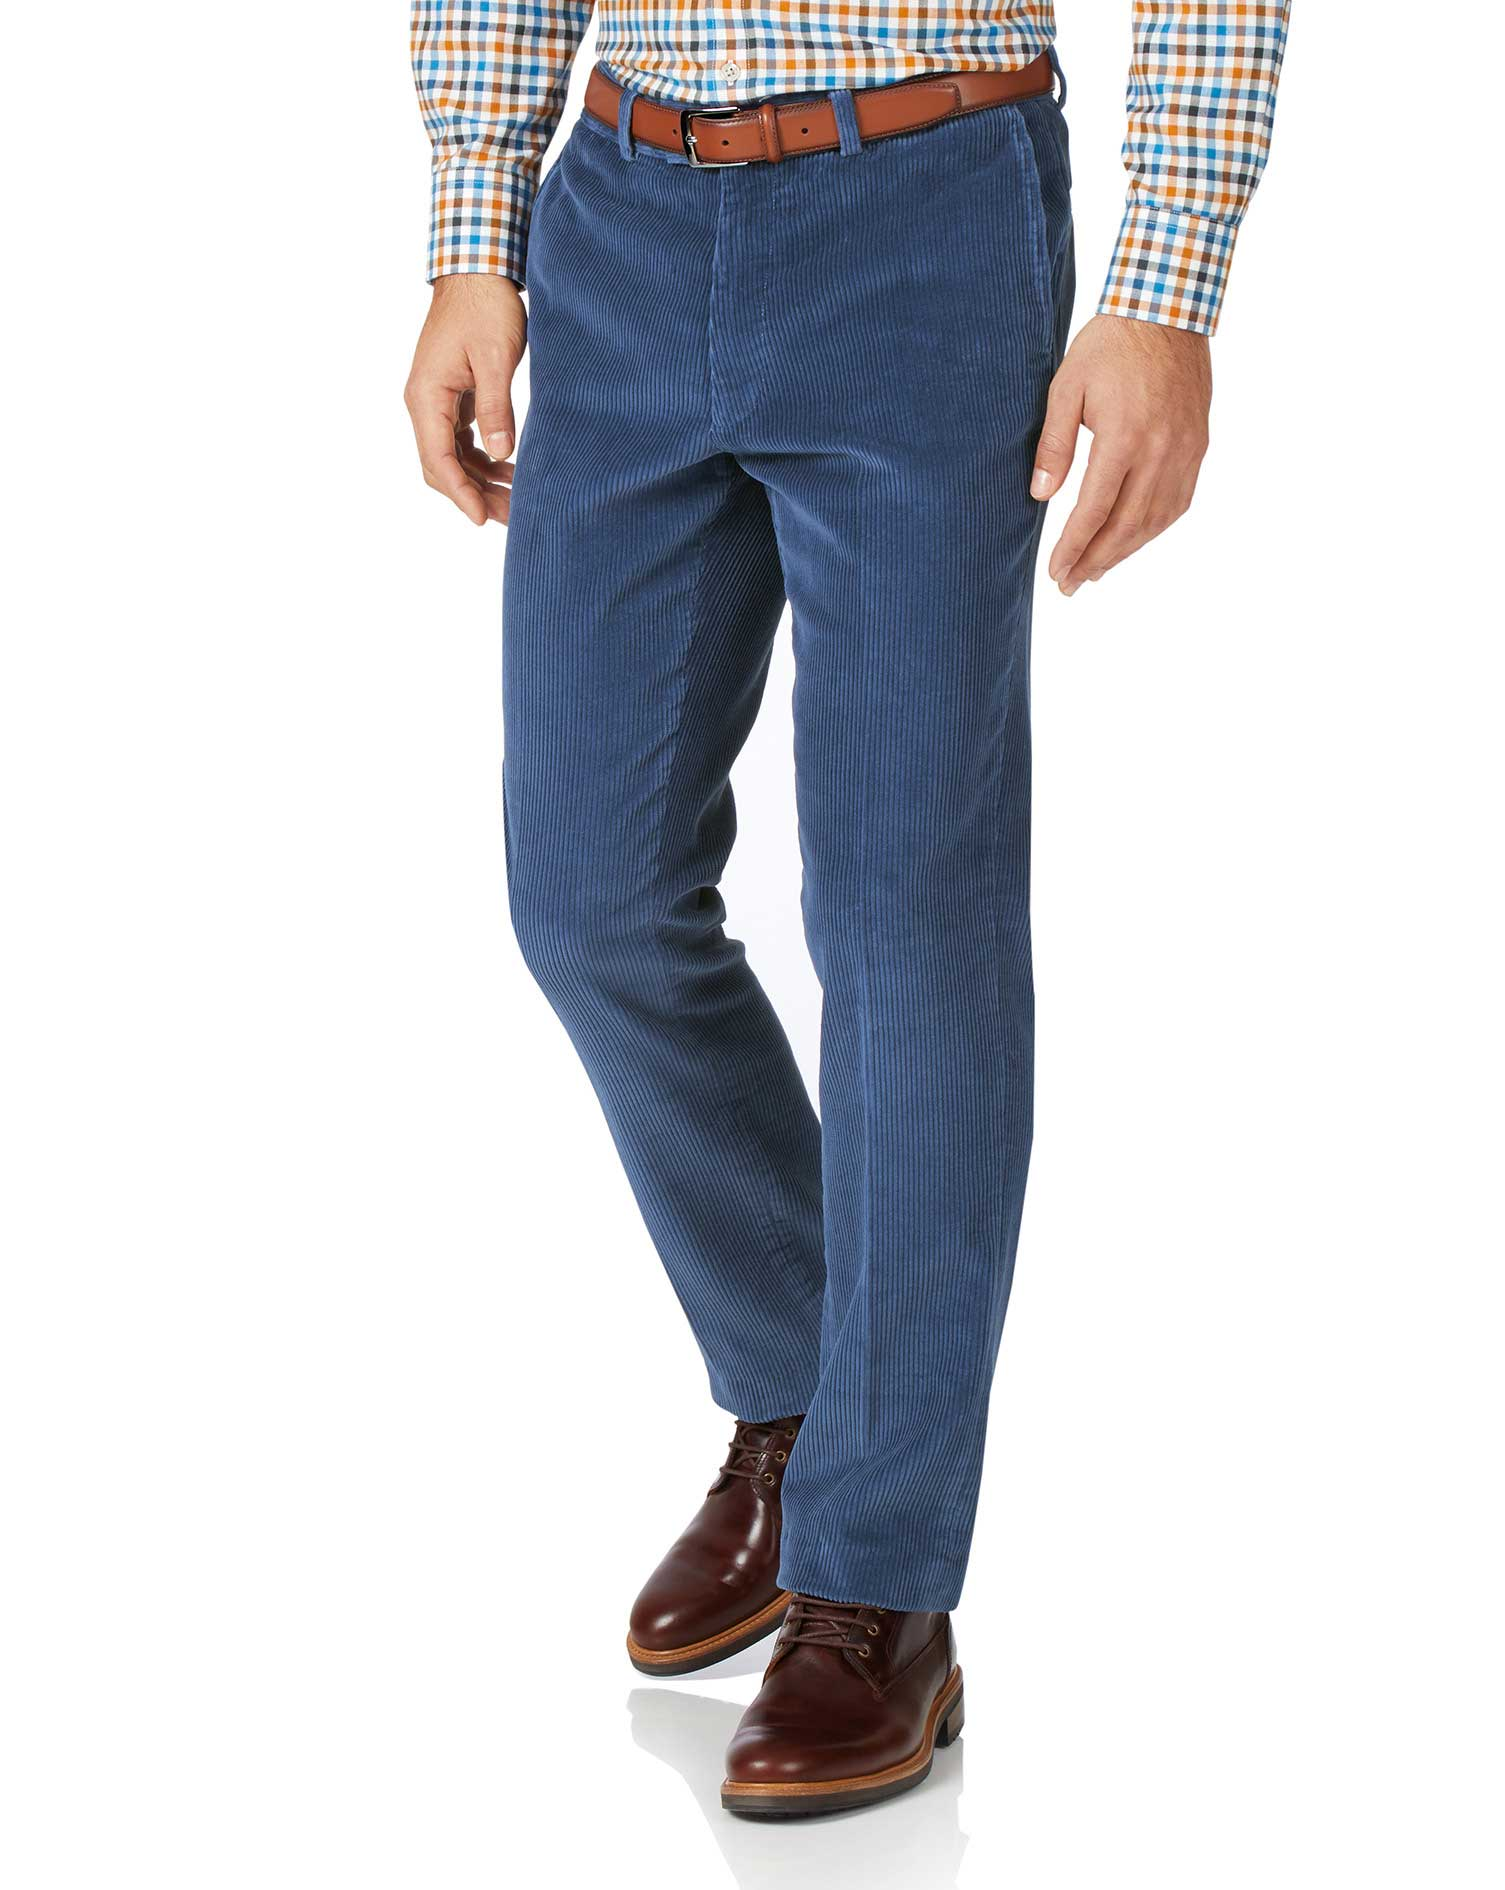 Airforce Blue Classic Fit Jumbo Corduroy Trousers Size W32 L32 by Charles Tyrwhitt